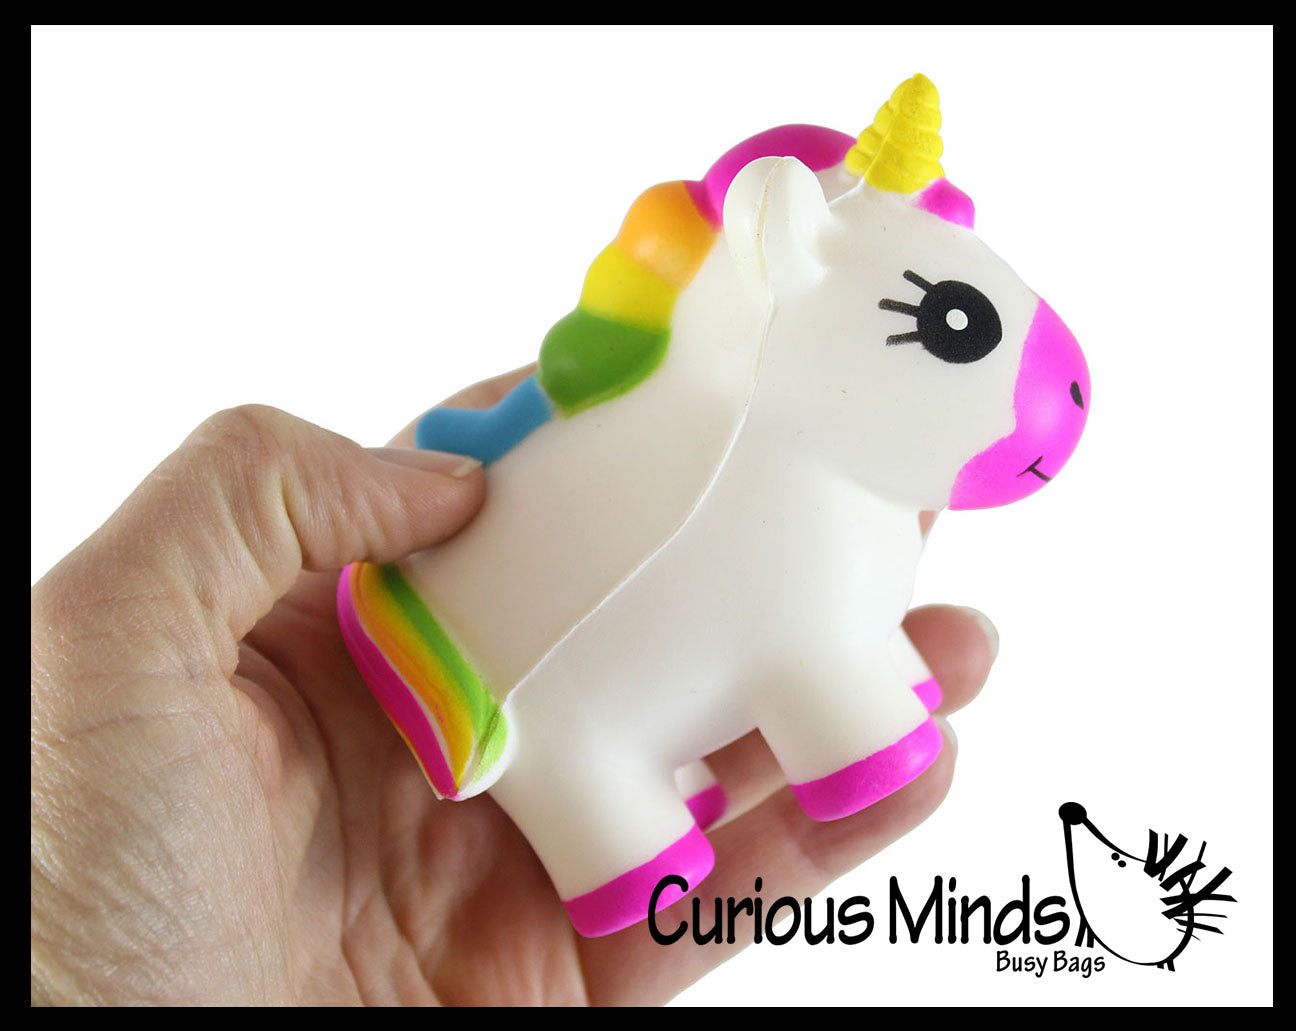 Unicorn Girly Magical Theme Squishy Slow Rise Foam -  Scented Sensory, Stress, Fidget Toy